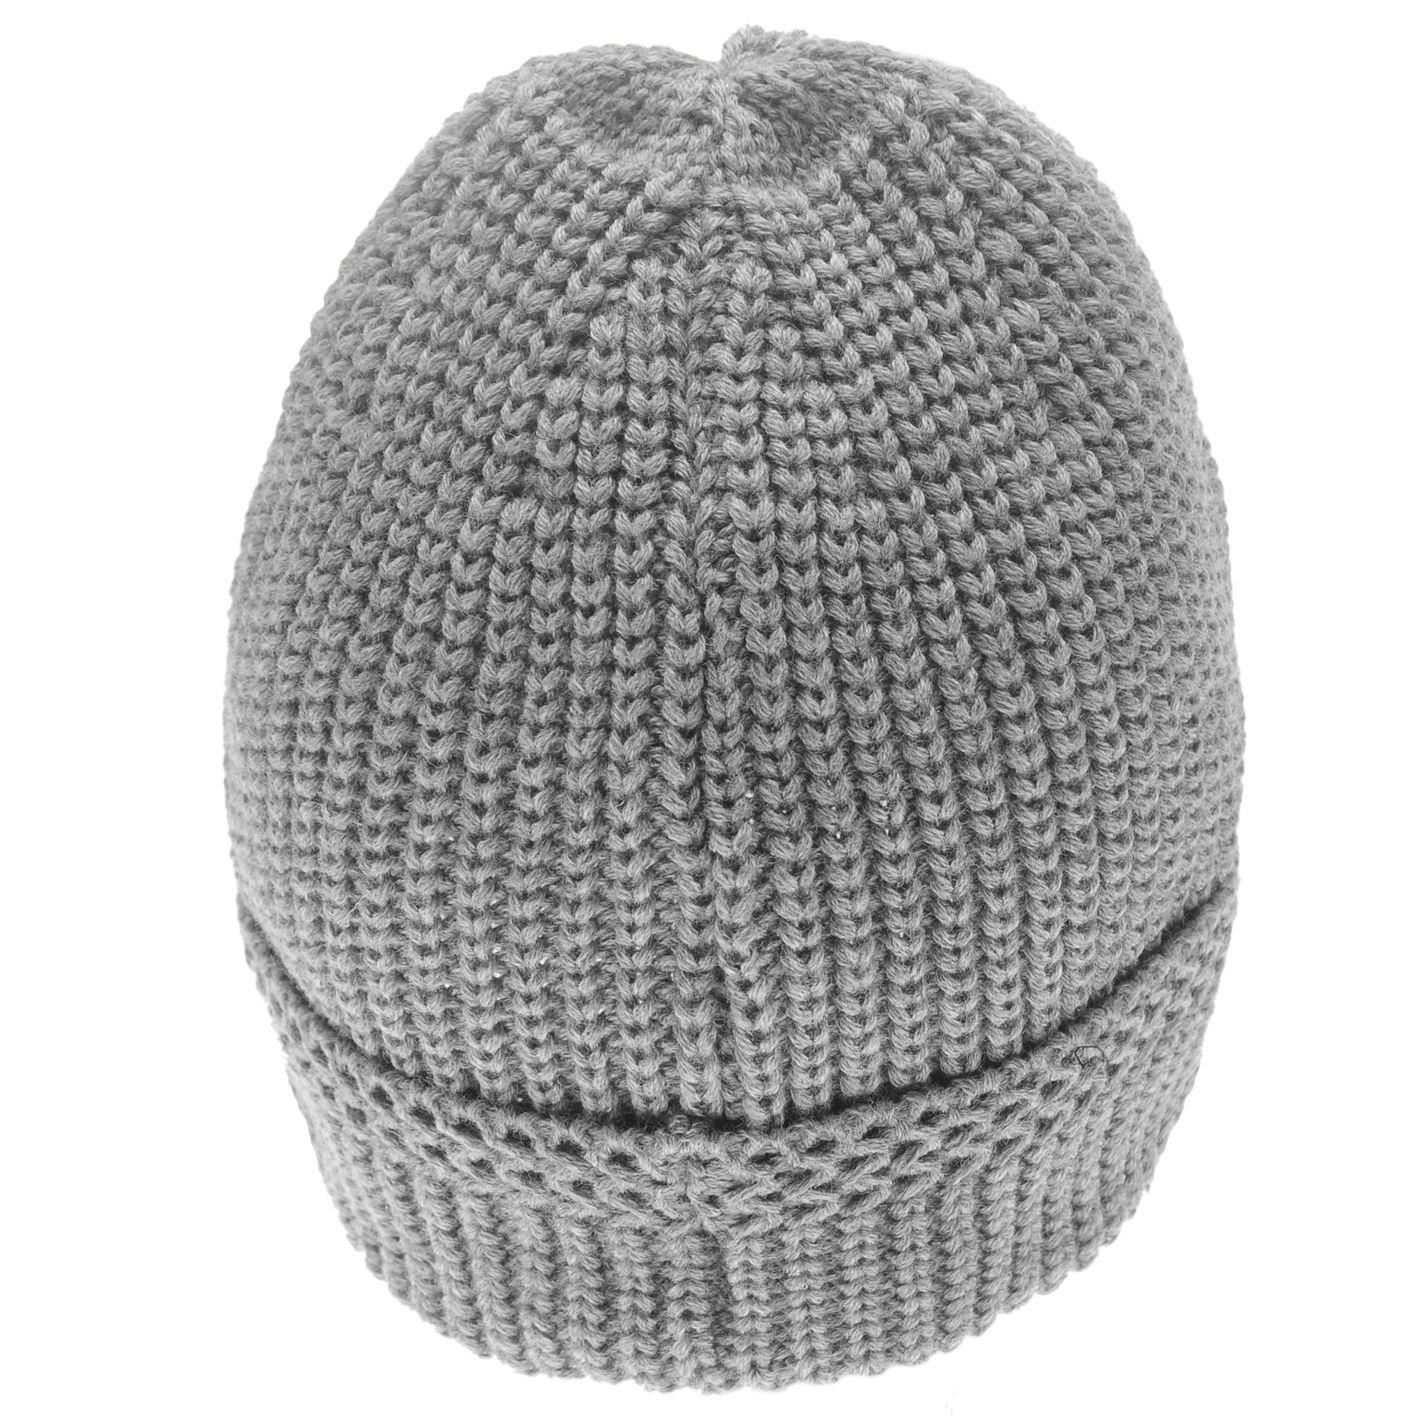 MENS FIRETRAP GREY MARL CABLE HAT WOOLLY KNIT KNITTED SKI SKIING BOBBLE BEANIE